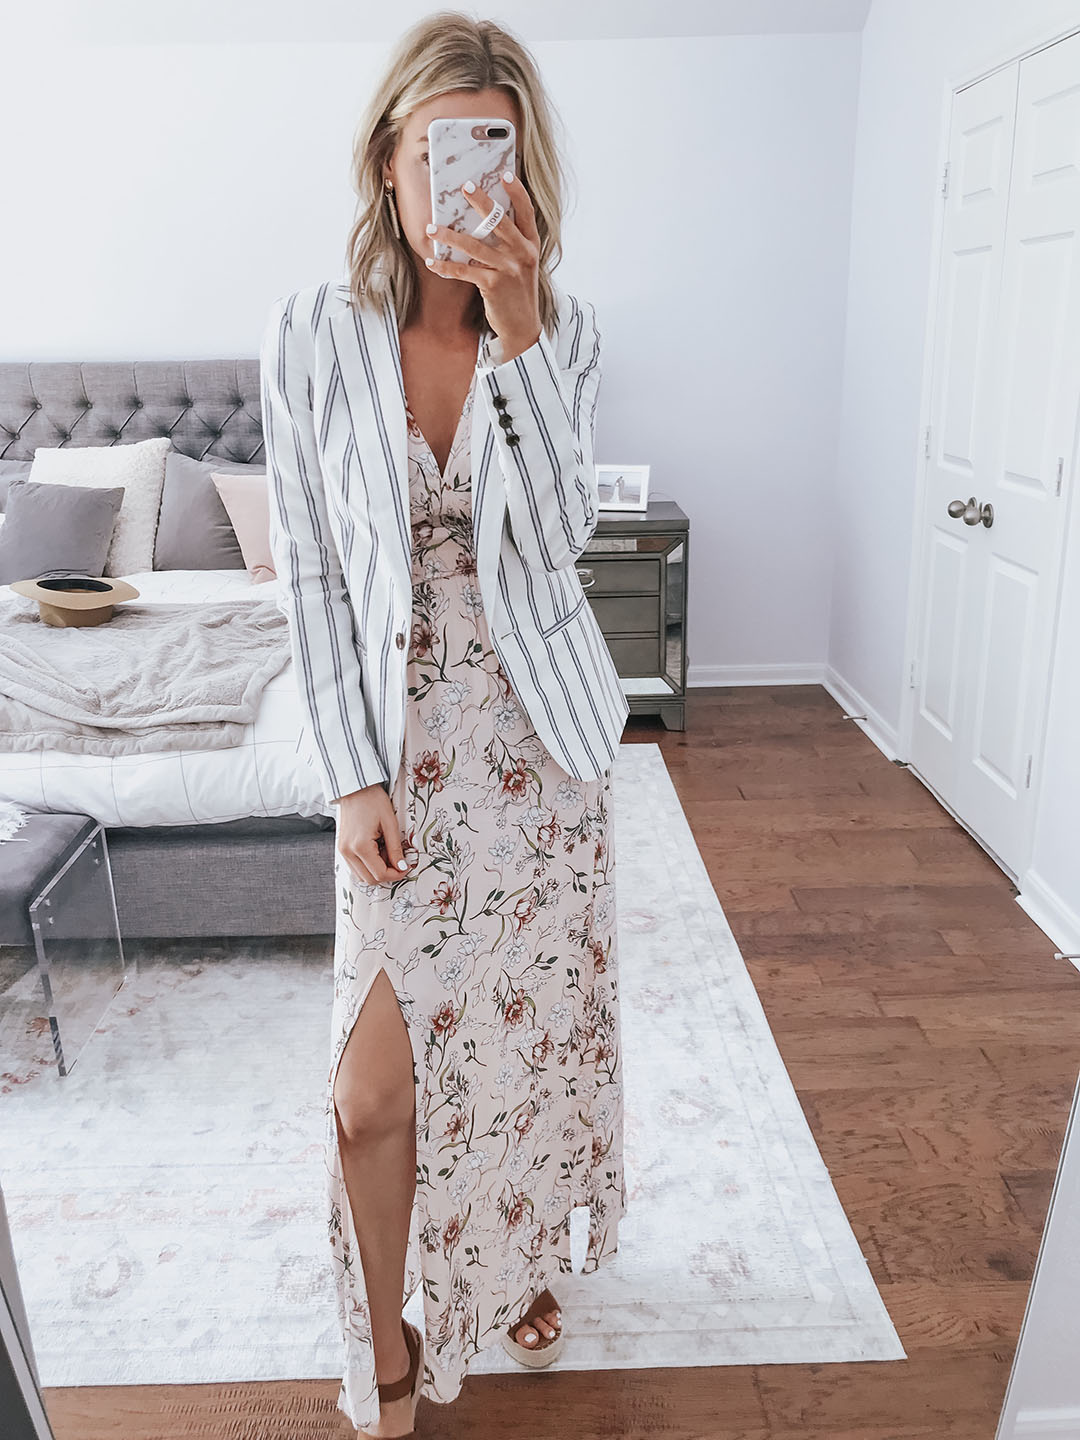 5343ede11b OUTFIT ABOVE: Floral Maxi Dress (fit TTS + on sale for $25) // Striped  Blazer (I sized down to a size 2) // Espadrille Wedges (fit TTS + so comfy)  // Wrap ...